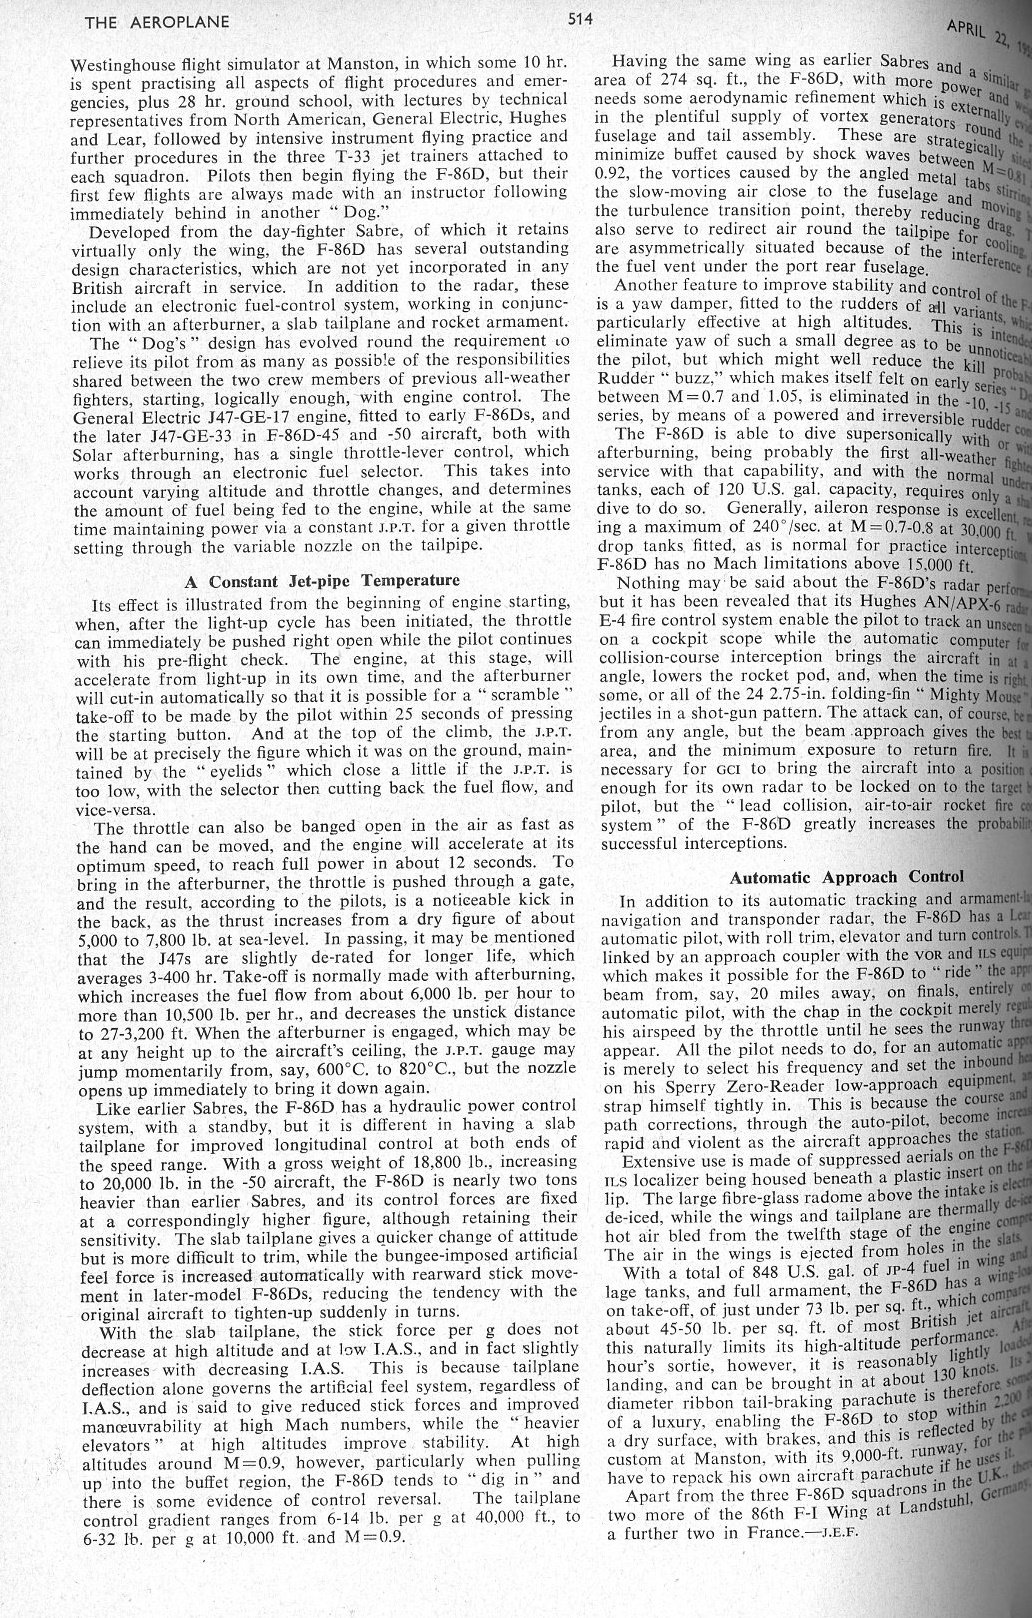 Second page of the article.